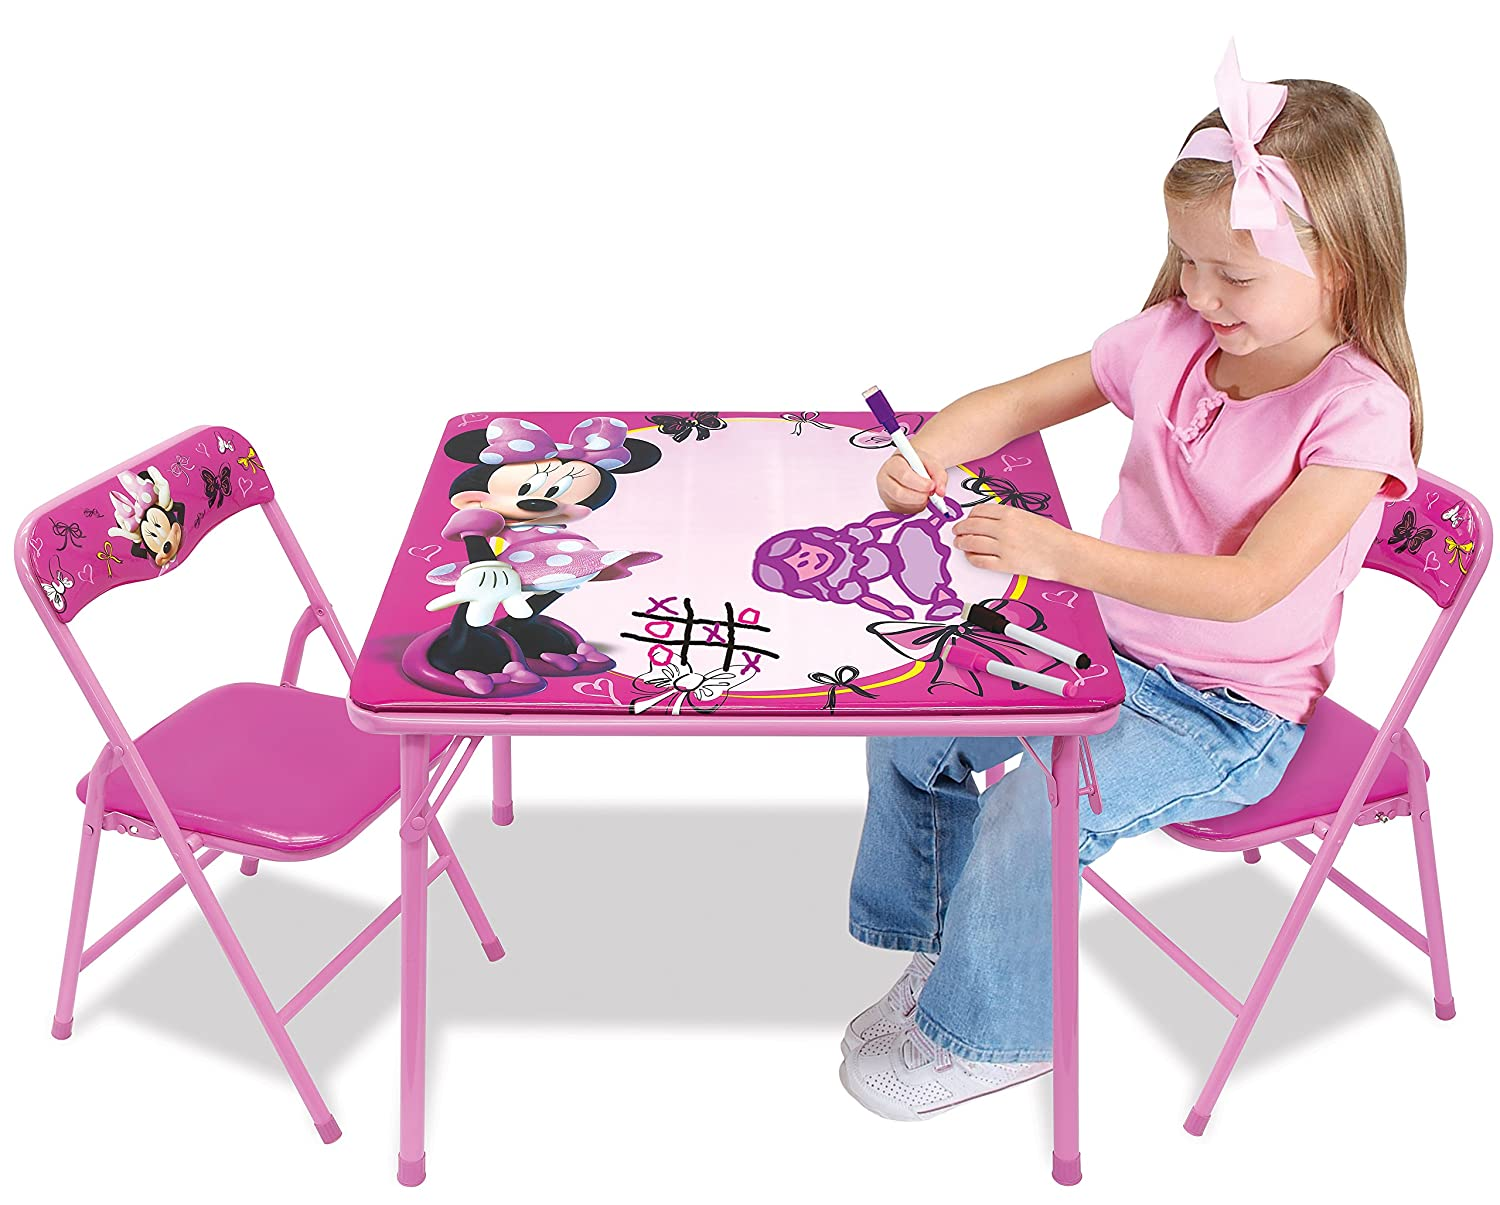 Minnie First Fashionista Erasable Activity Table Set with 3 Dry-Erase Markers by Minnie